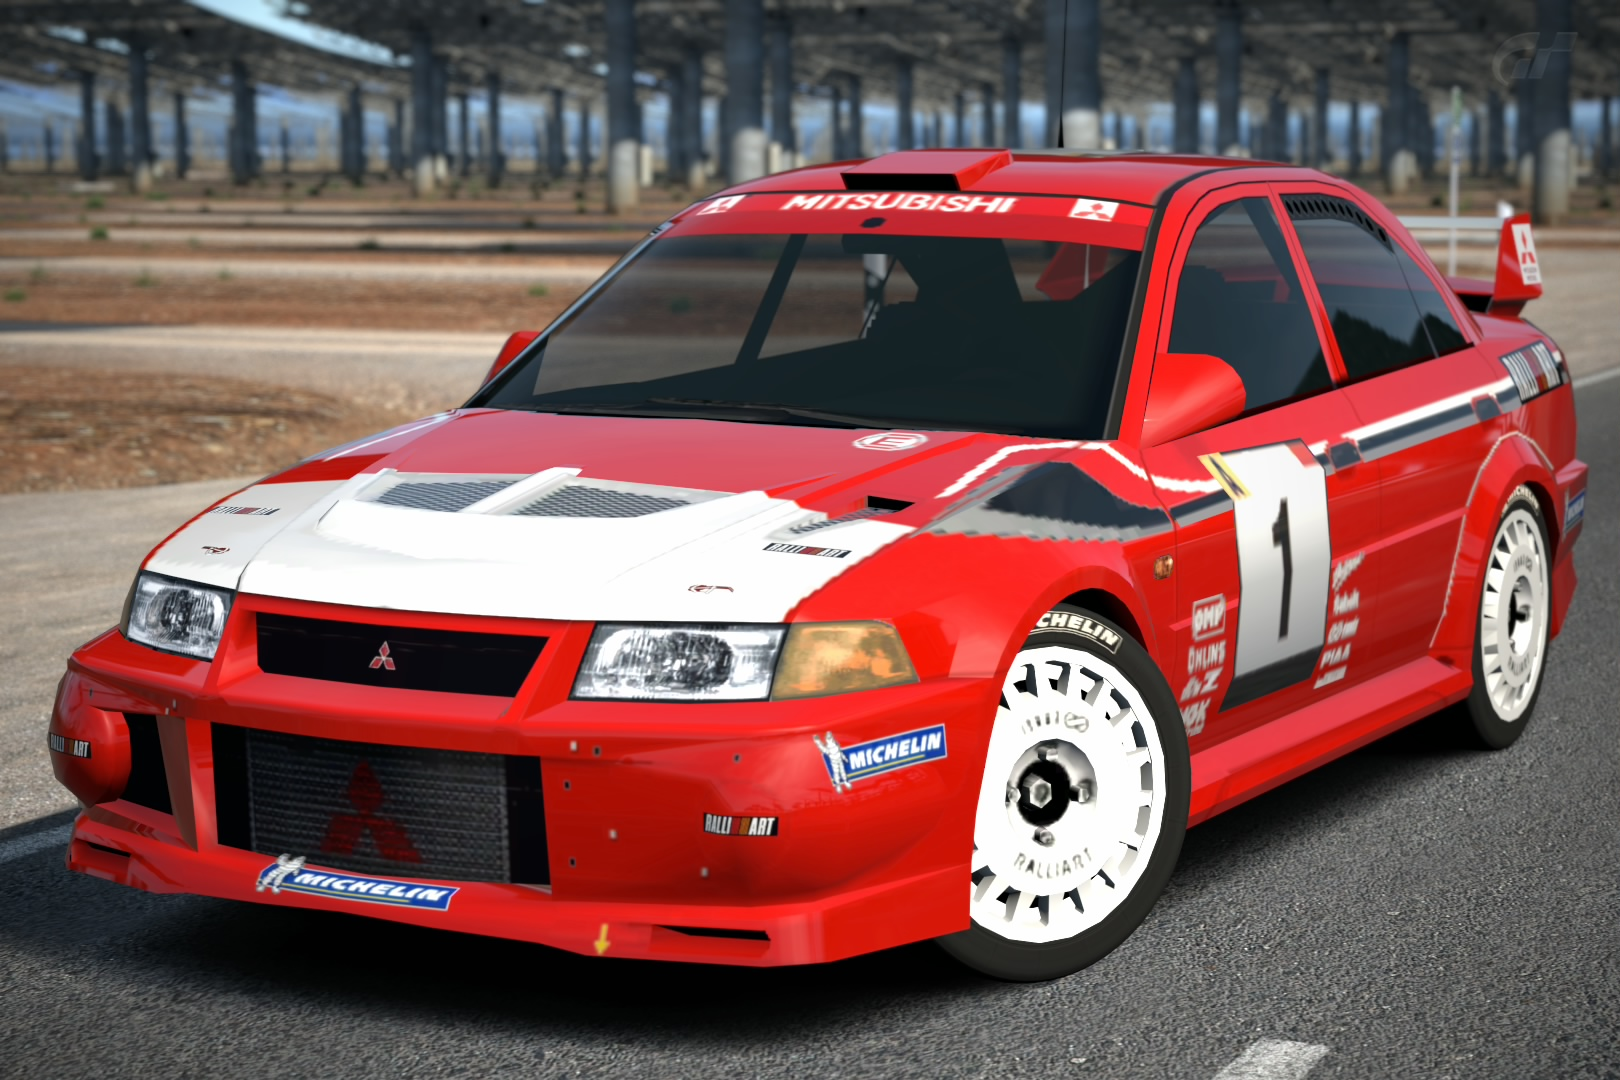 Mitsubishi Lancer Evolution VI Rally Car '99